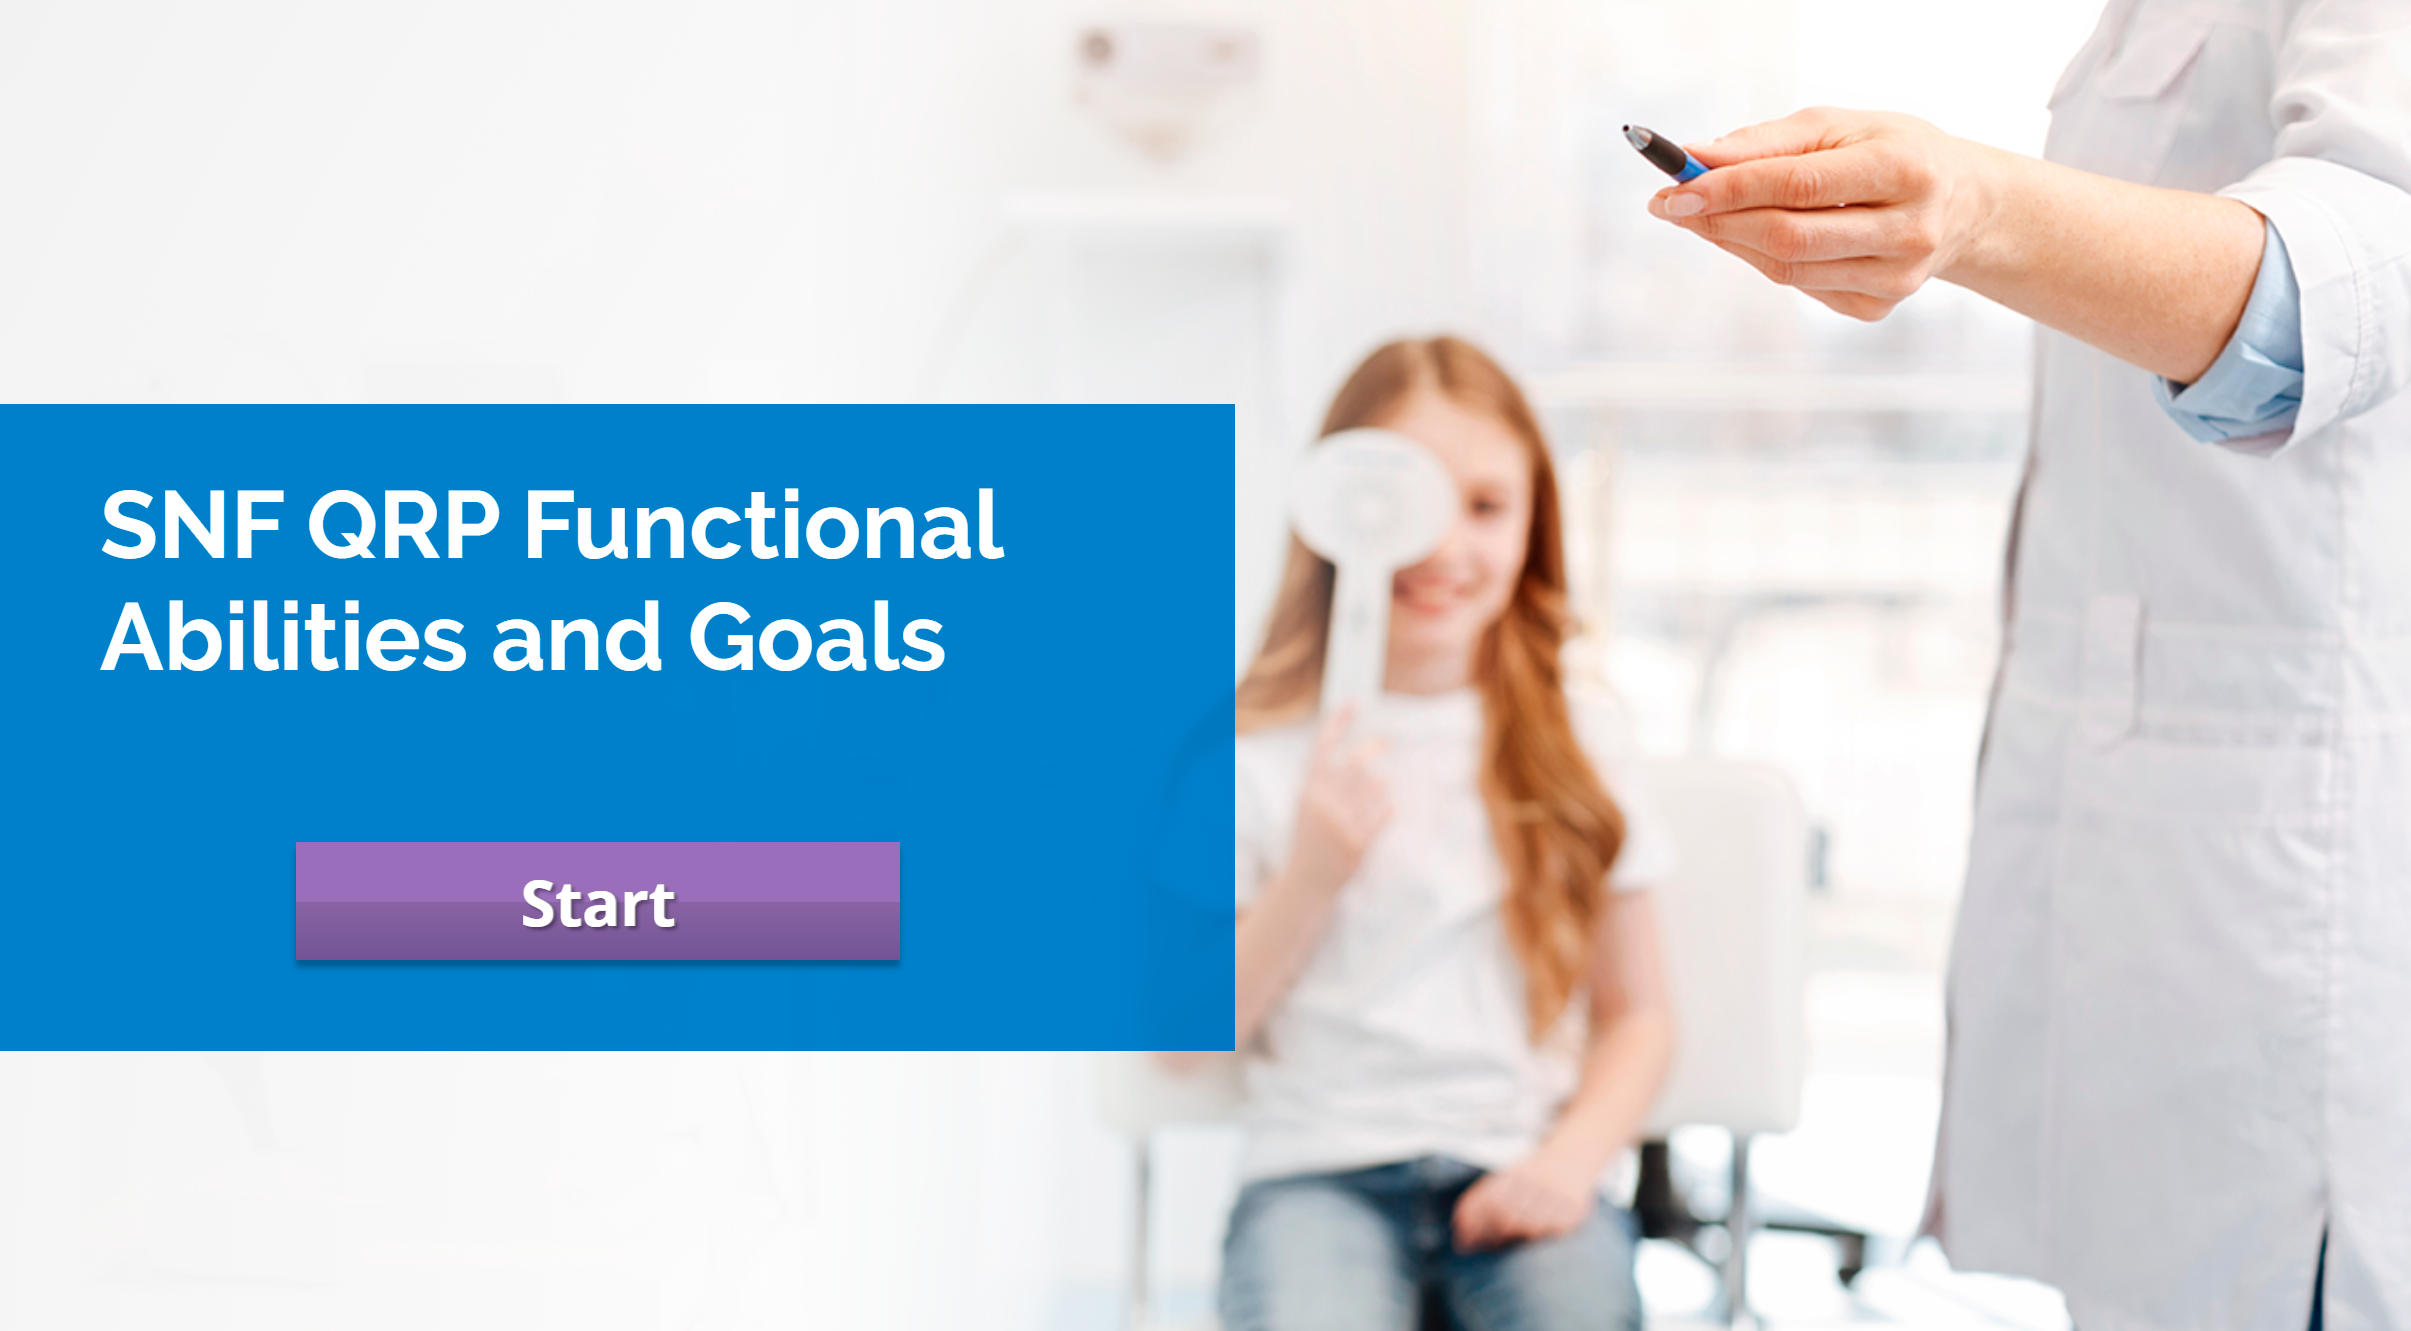 CMS SNF QRP: Section GG: Functional Abilities and Goals